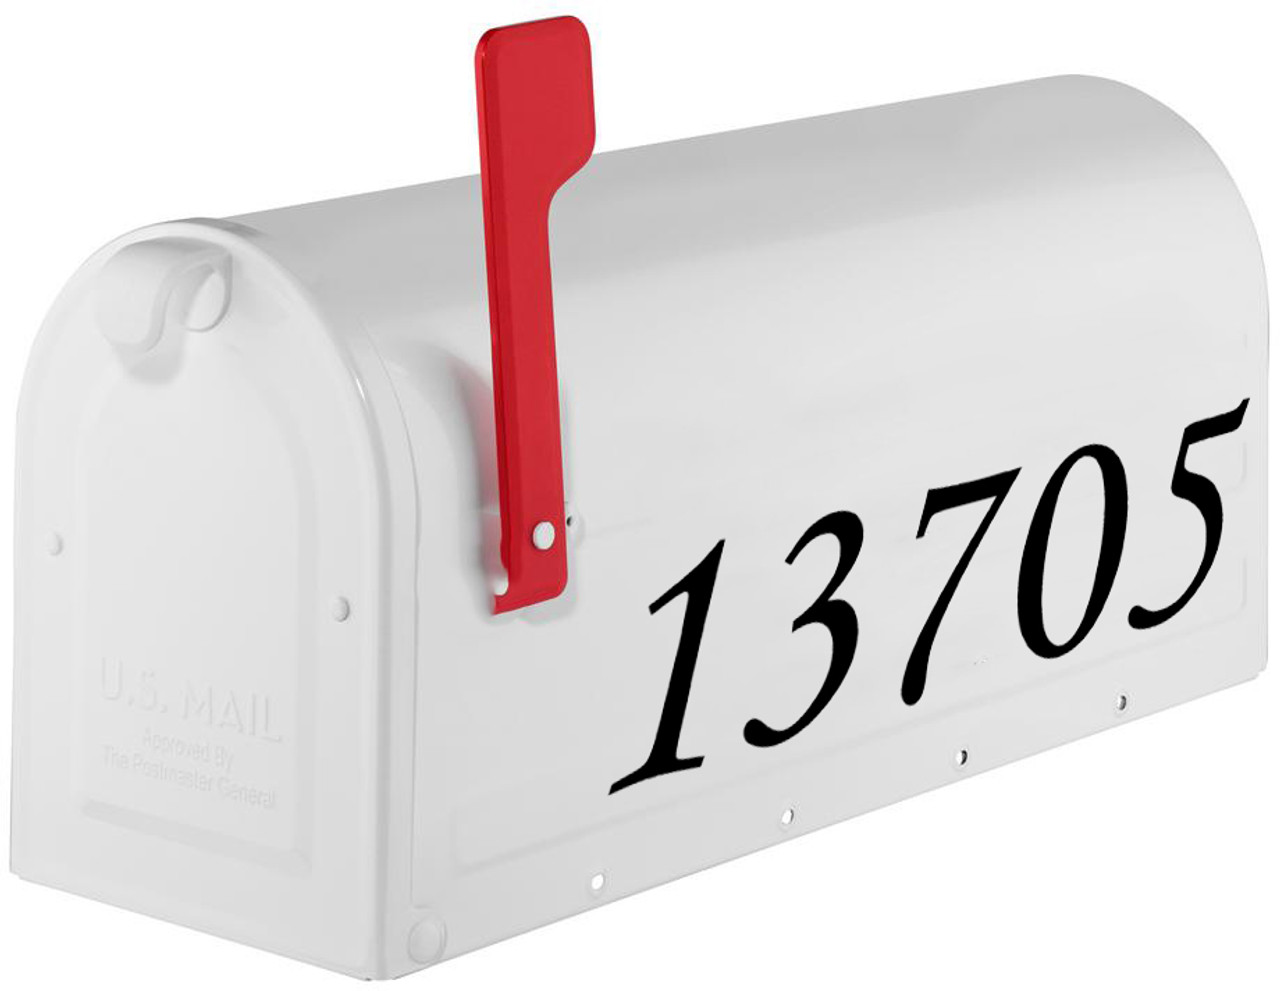 Italic Mailbox Numbers - Vinyl Sticker - 1 to 8 inches tall - Custom Personalized Name Home House Office Address - MC